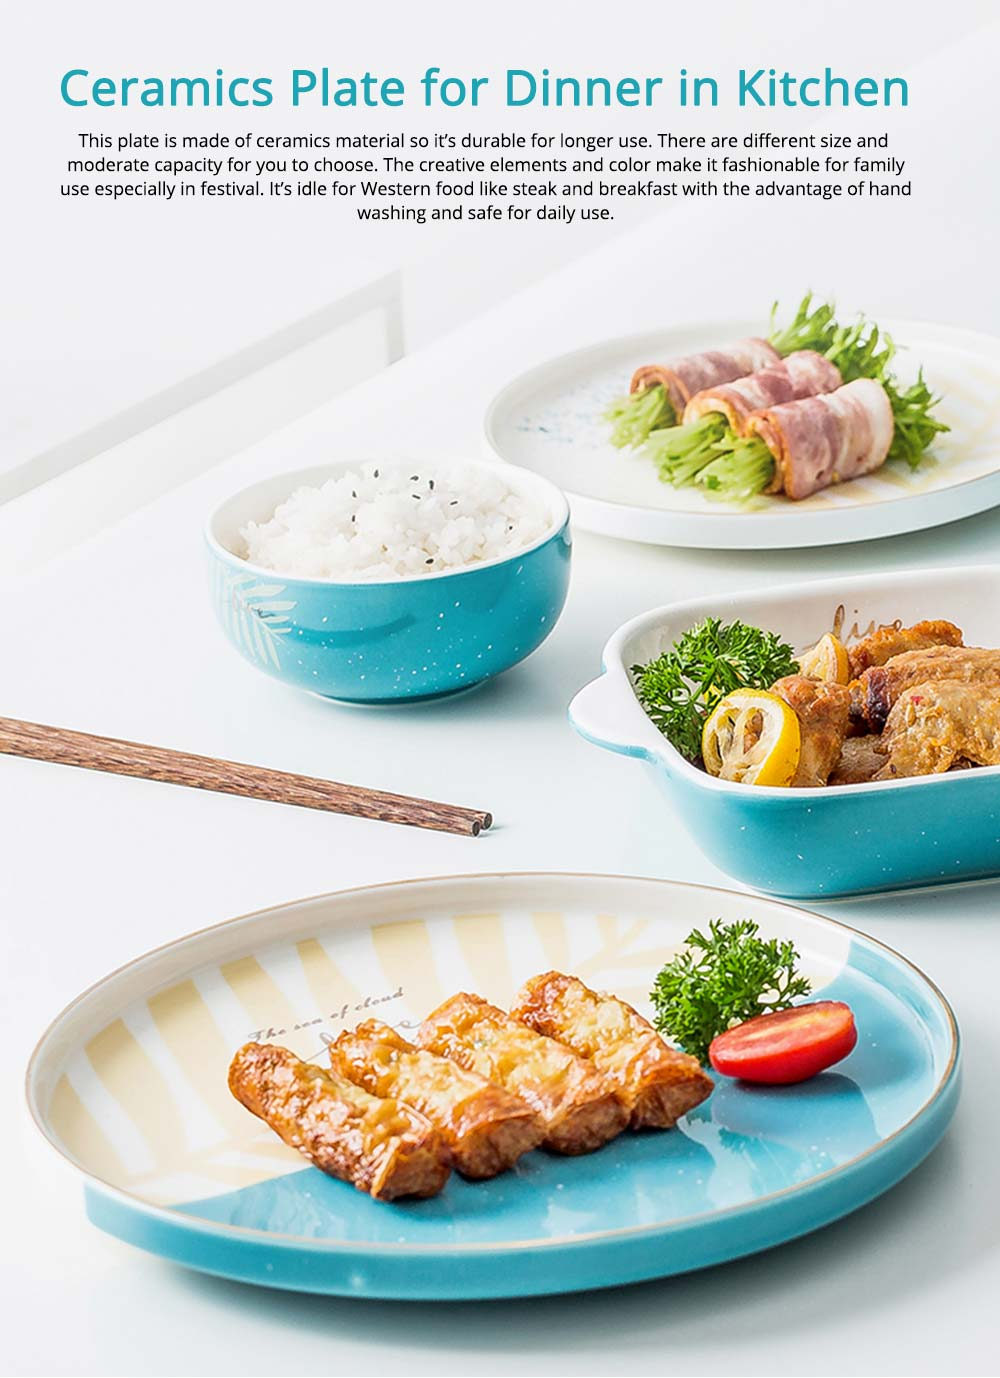 Fashionable Ceramics Plates for Dinner, Different Sizes 0